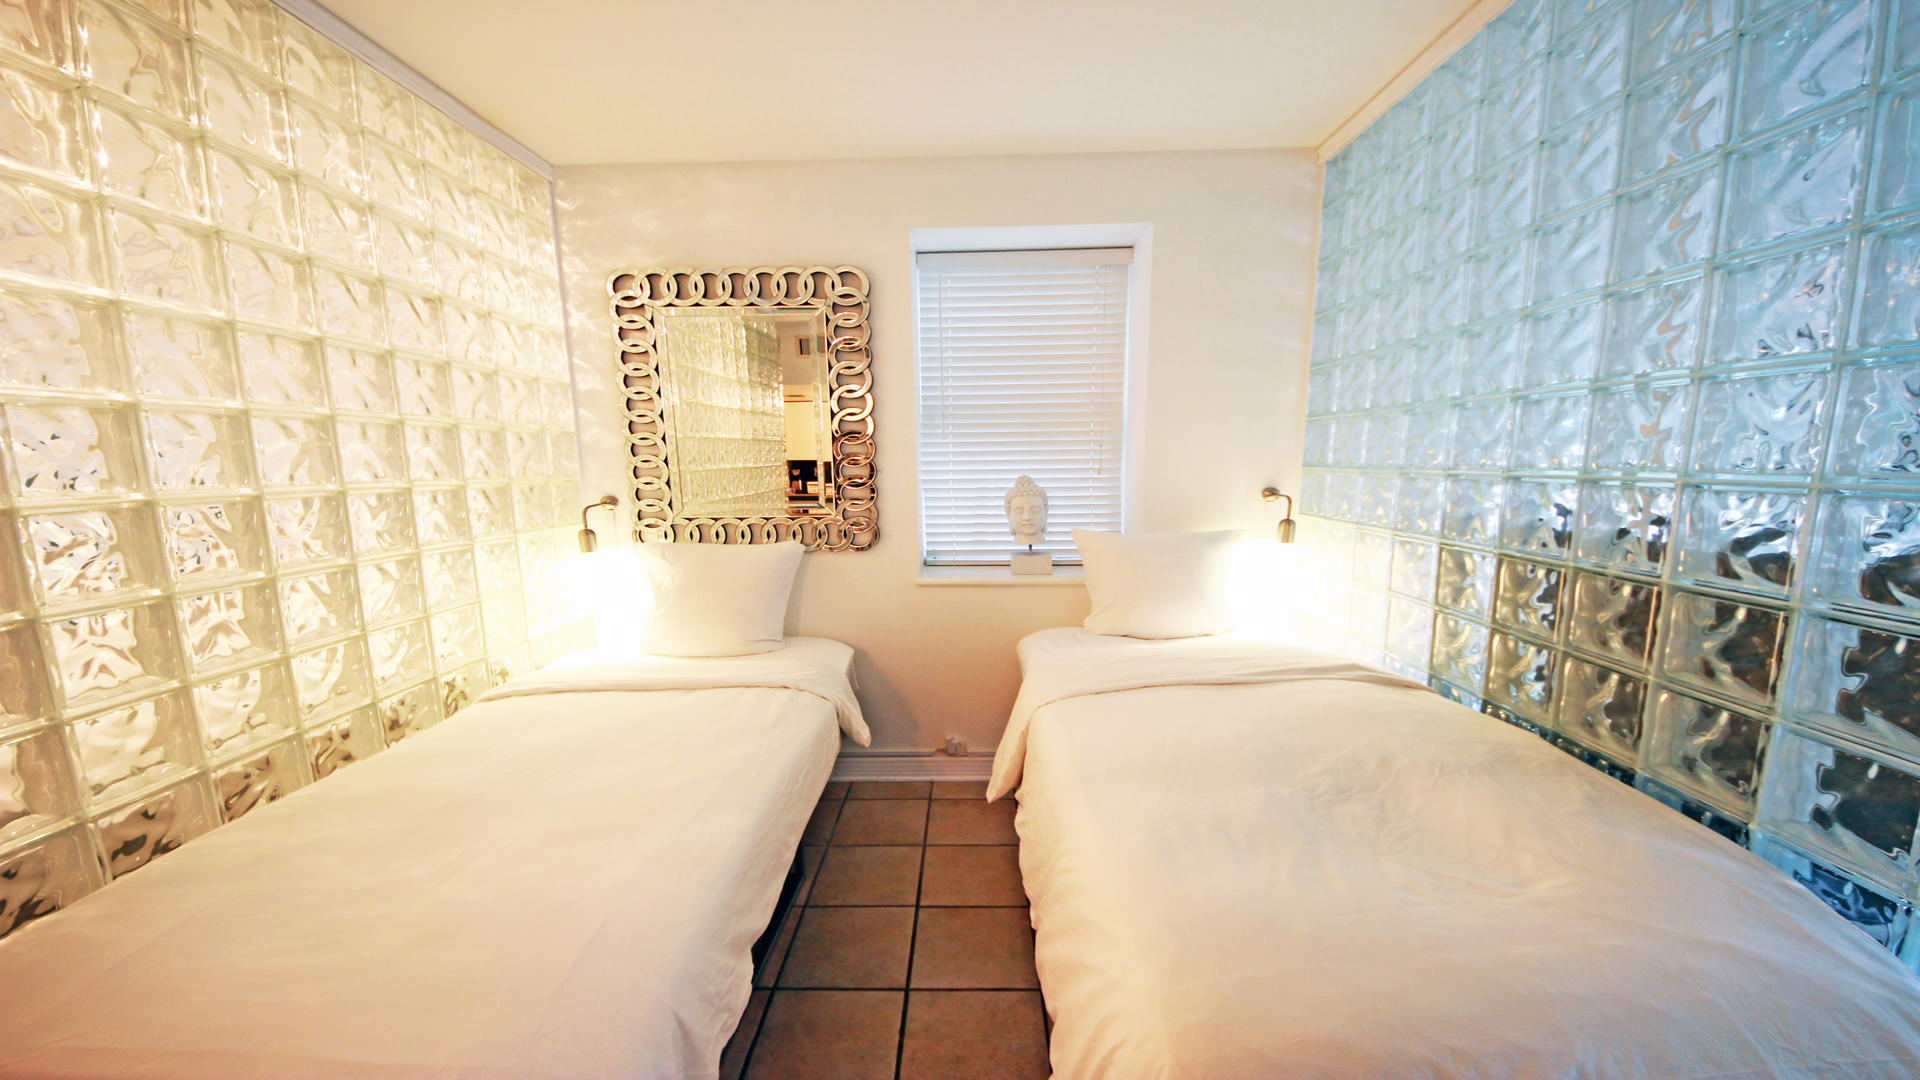 Bedroom-nr-3-with-1-king-or-2-twin-beds